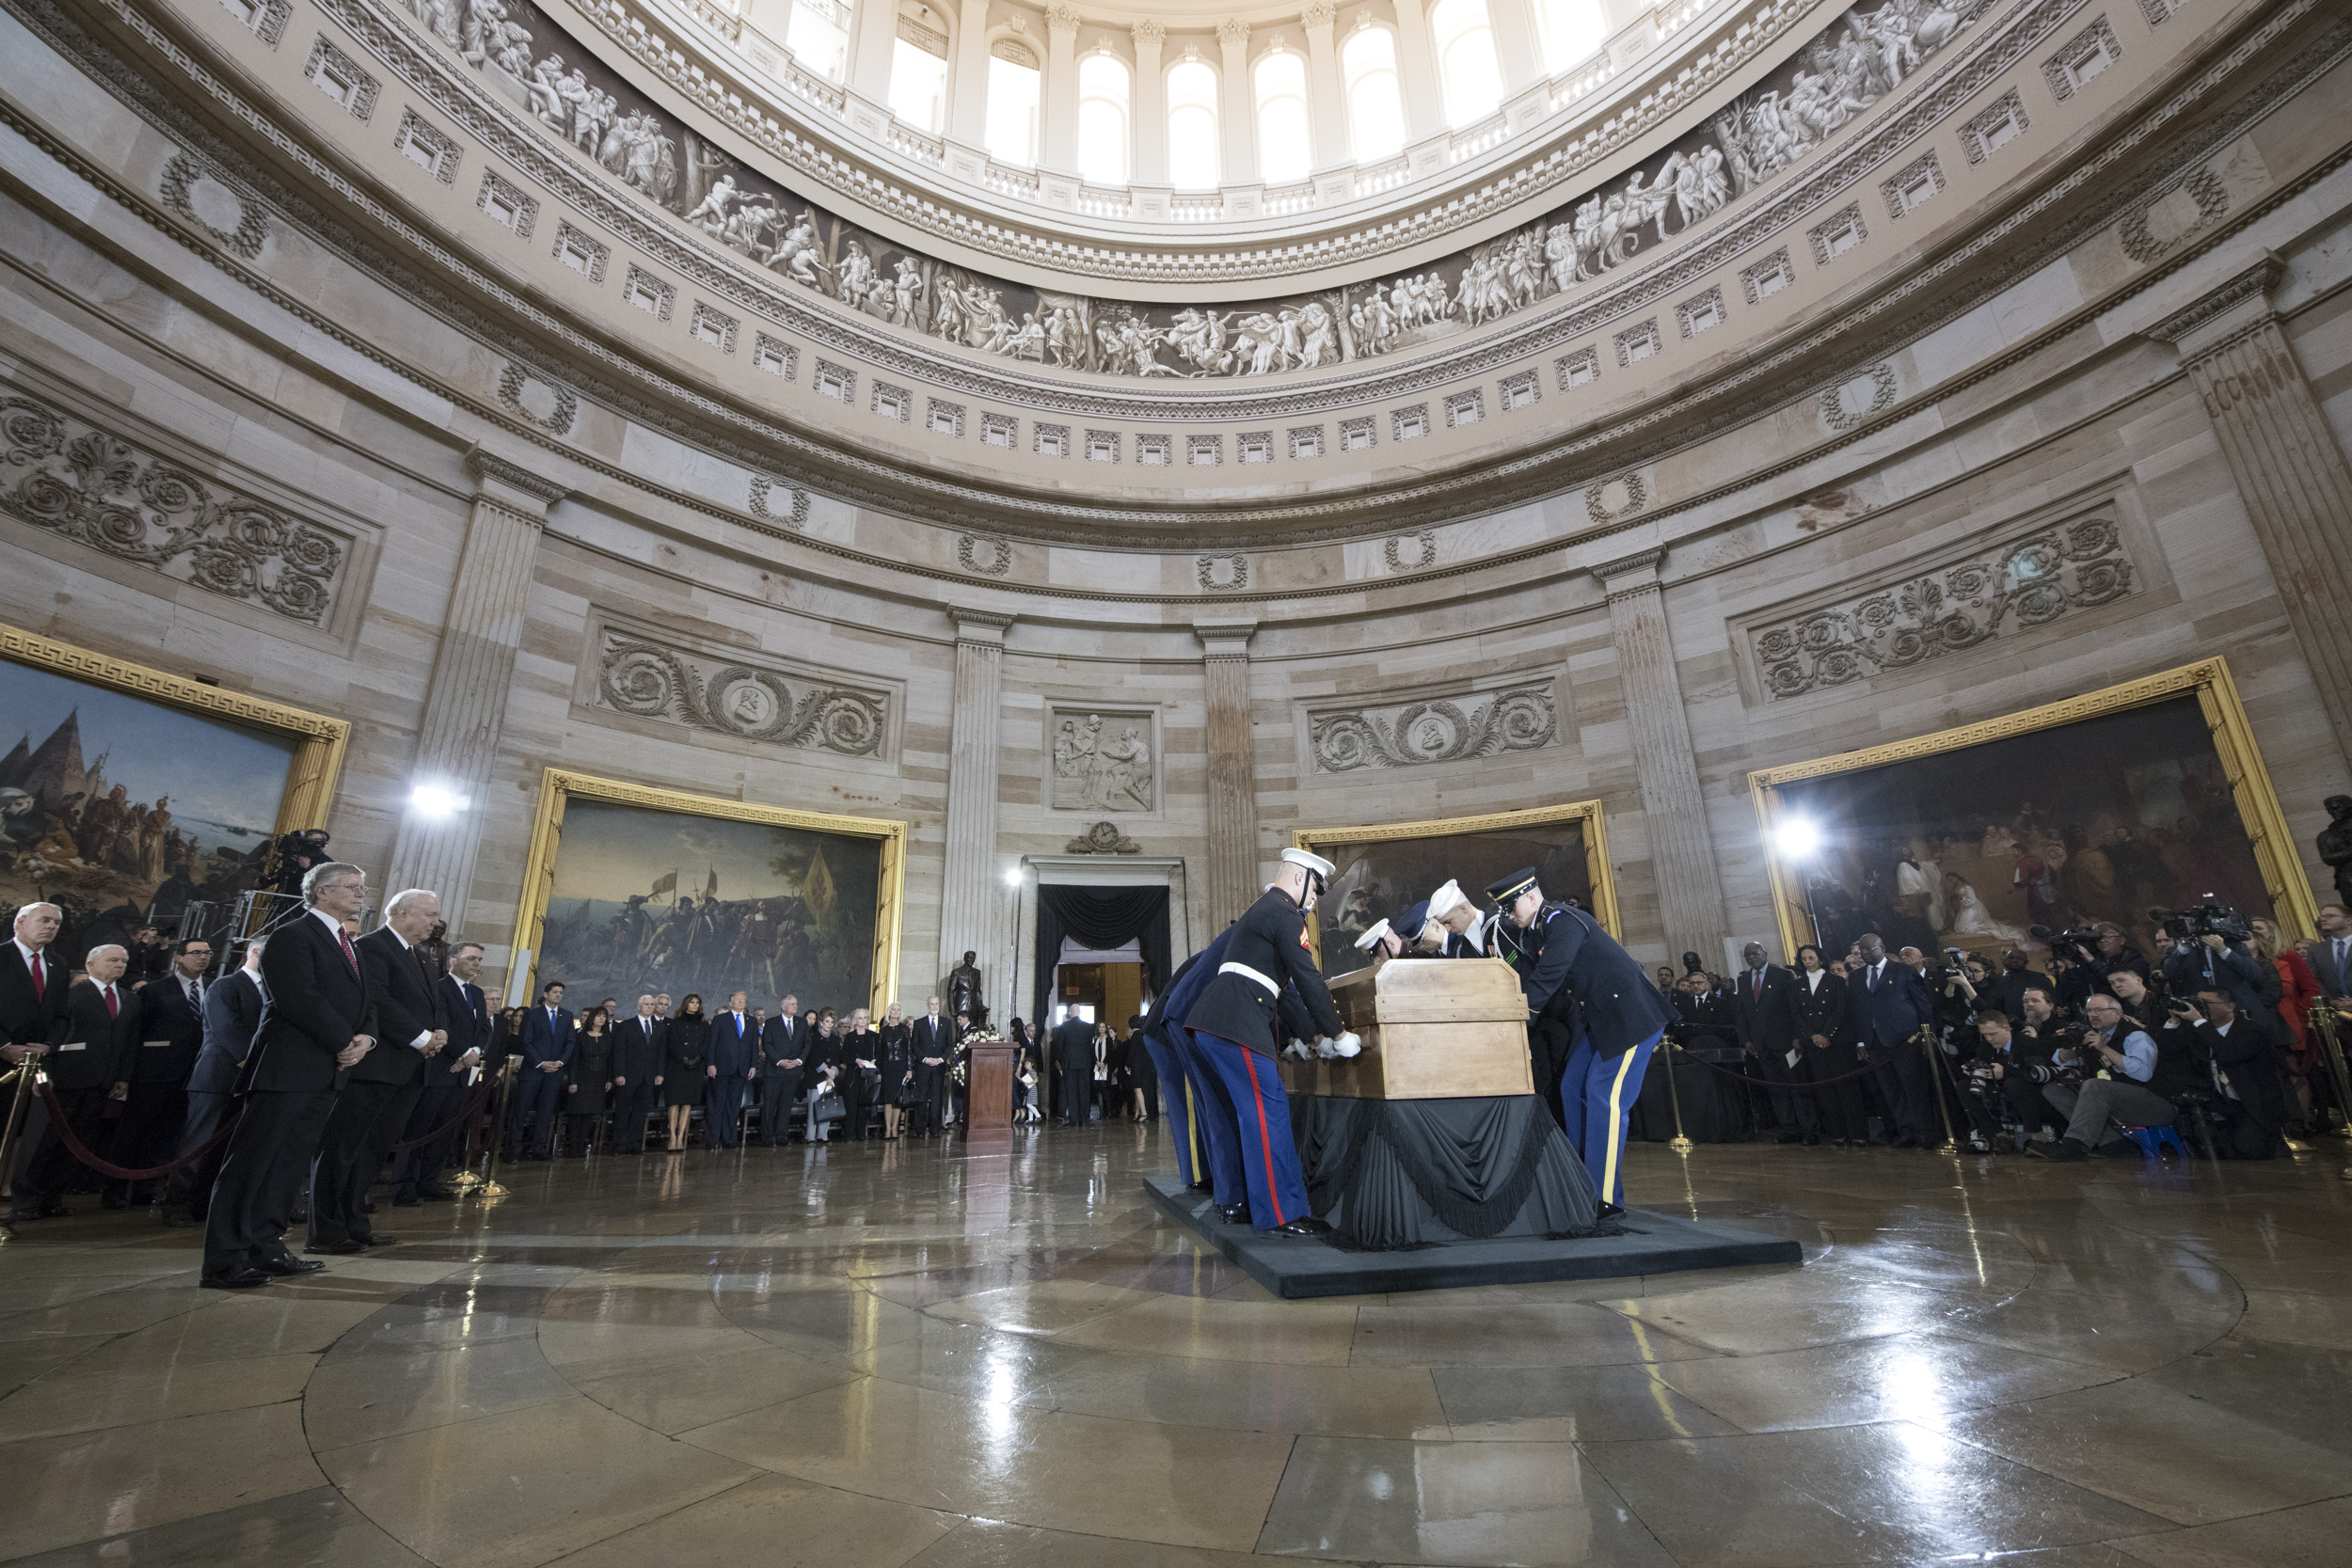 Reverend Graham lying in honor in the U.S. Capitol Rotunda